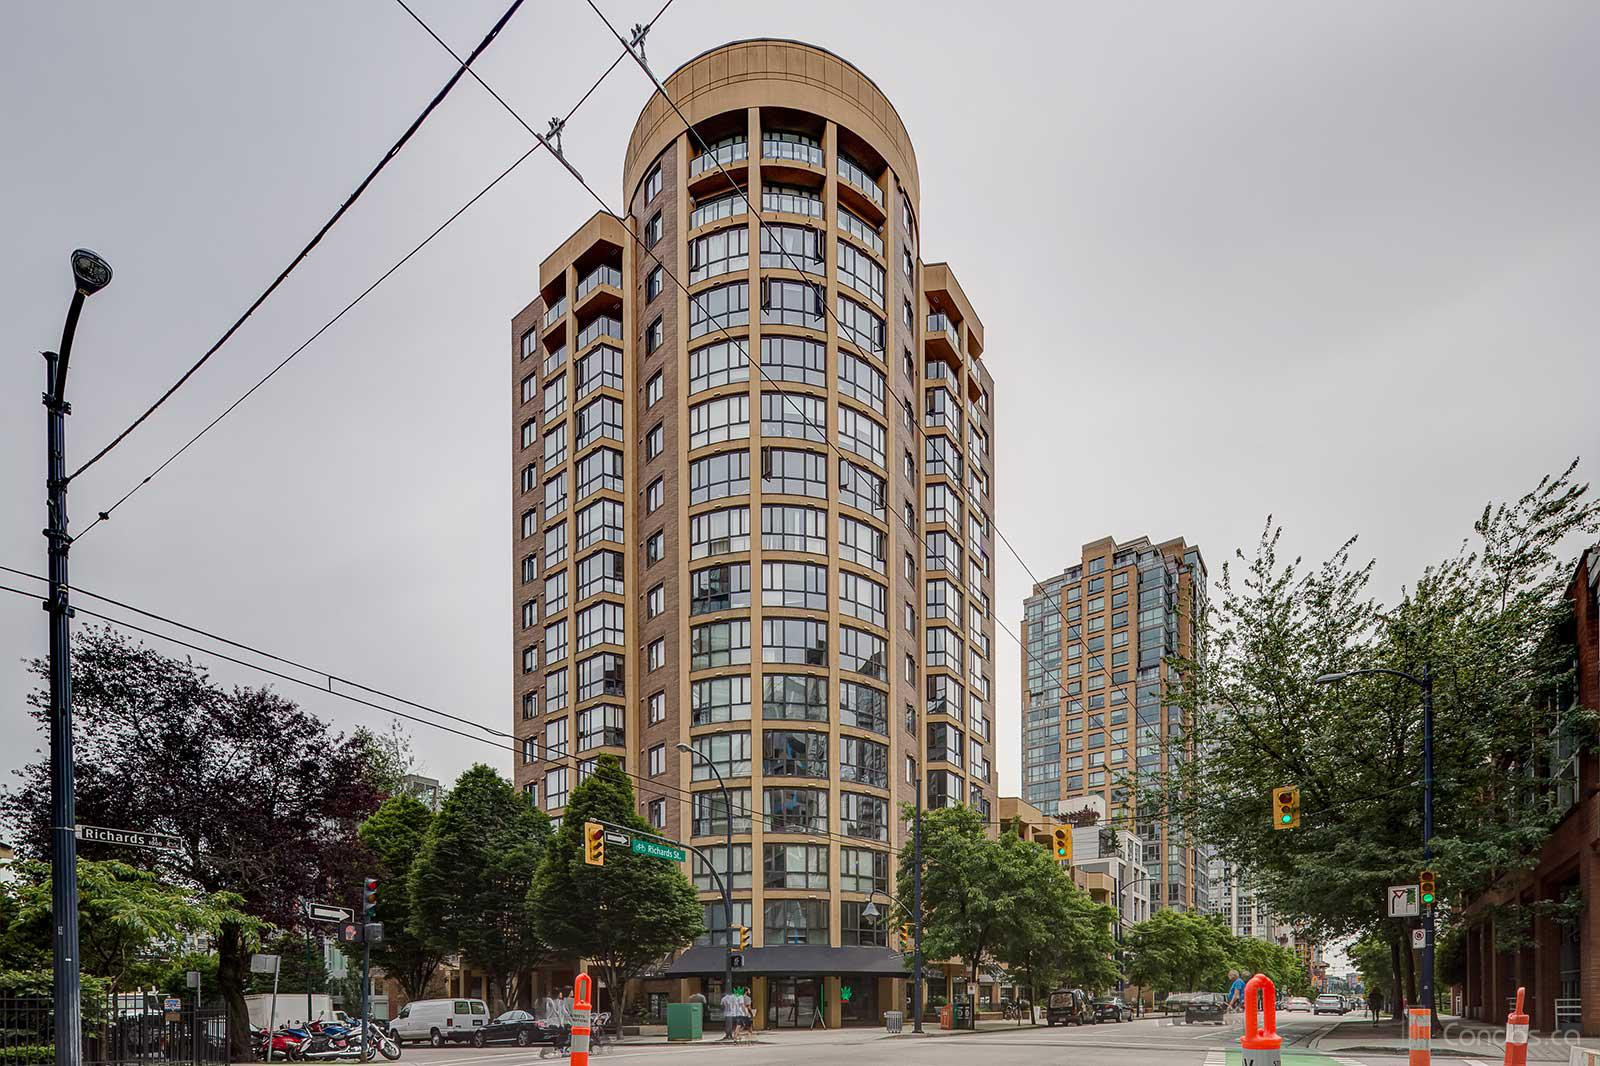 Robinson Tower at 488 Helmcken St, Vancouver 1